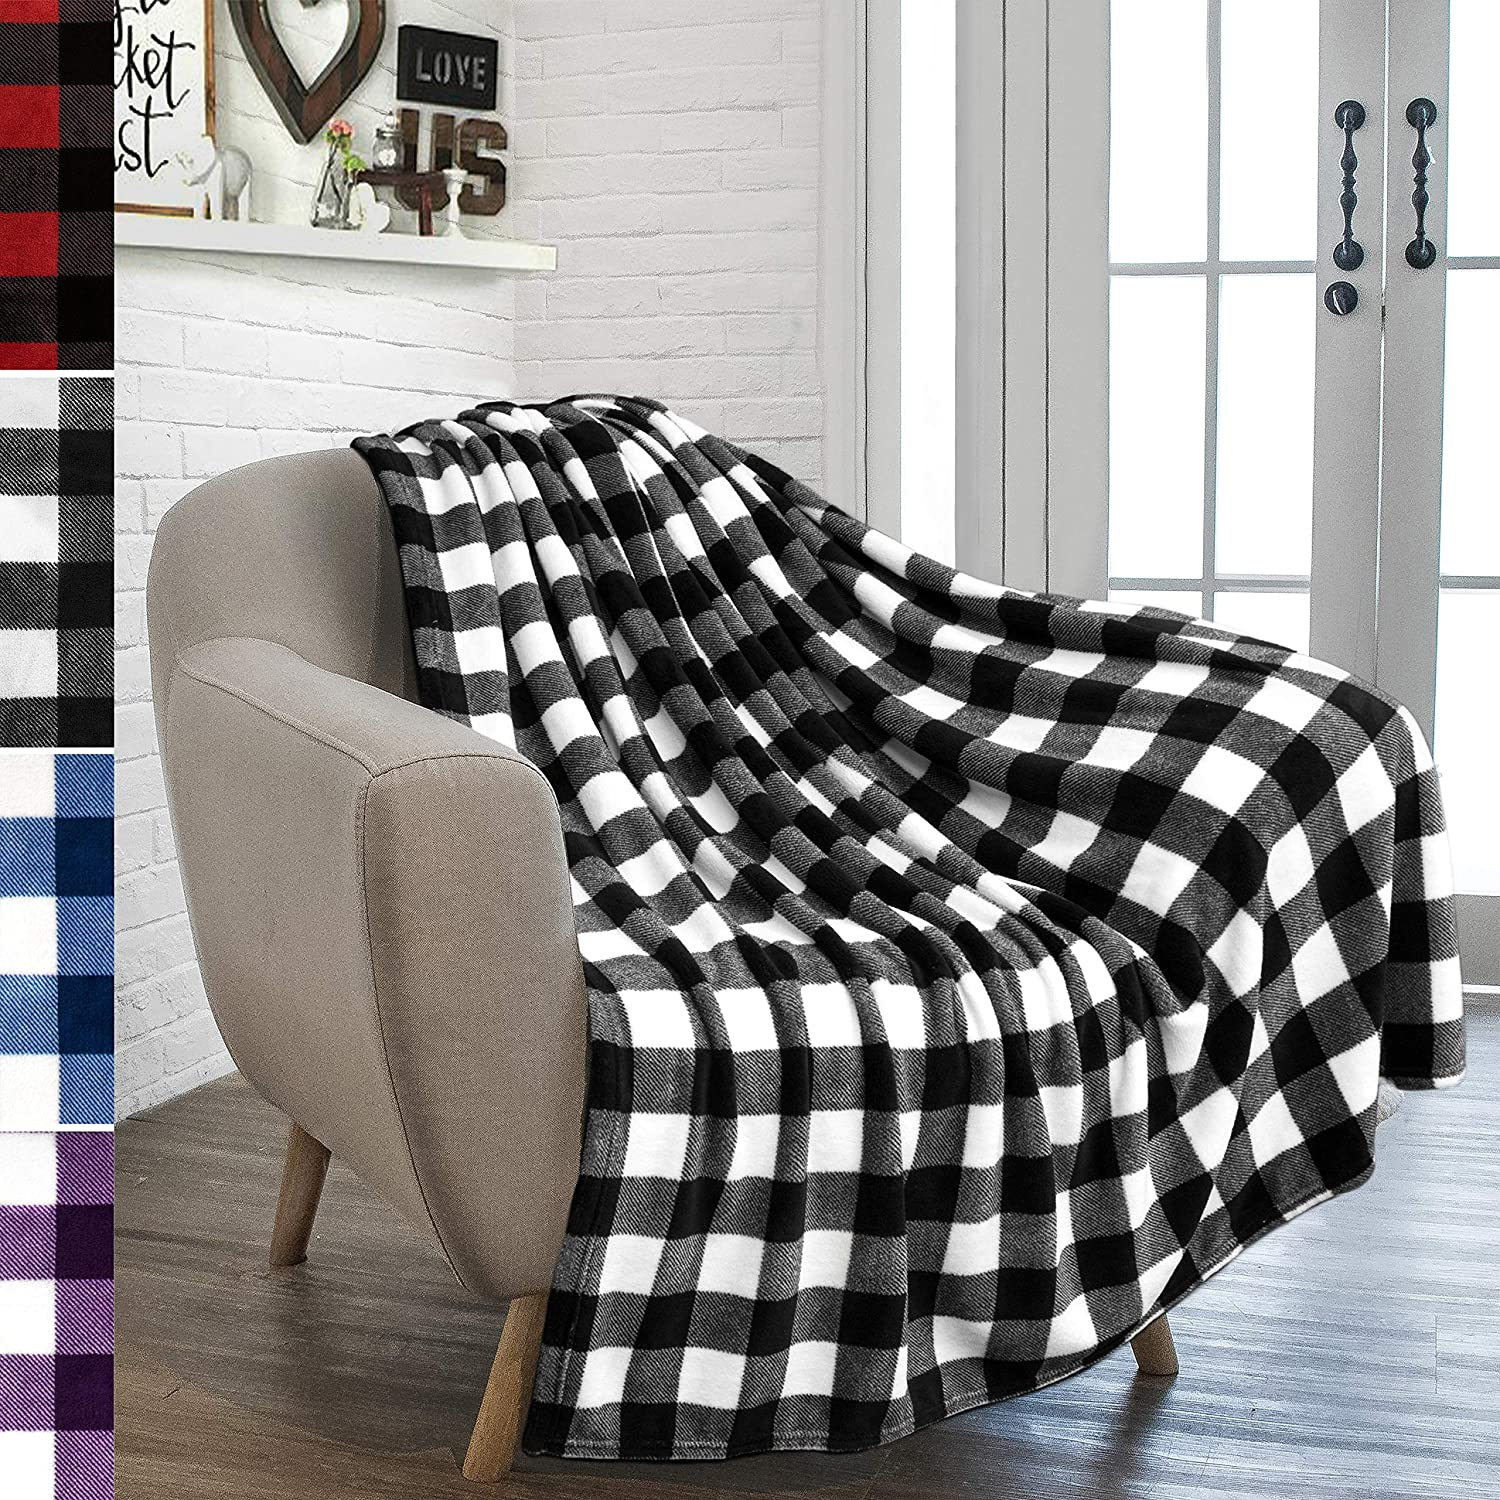 PAVILIA Flannel Fleece Throw Blanket for Sofa Couch | Super Soft Velvet Plaid Pattern Checkered Decorative Throw | Warm Cozy Lightweight Microfiber | 50 x 60 Inches Plaid White/Black